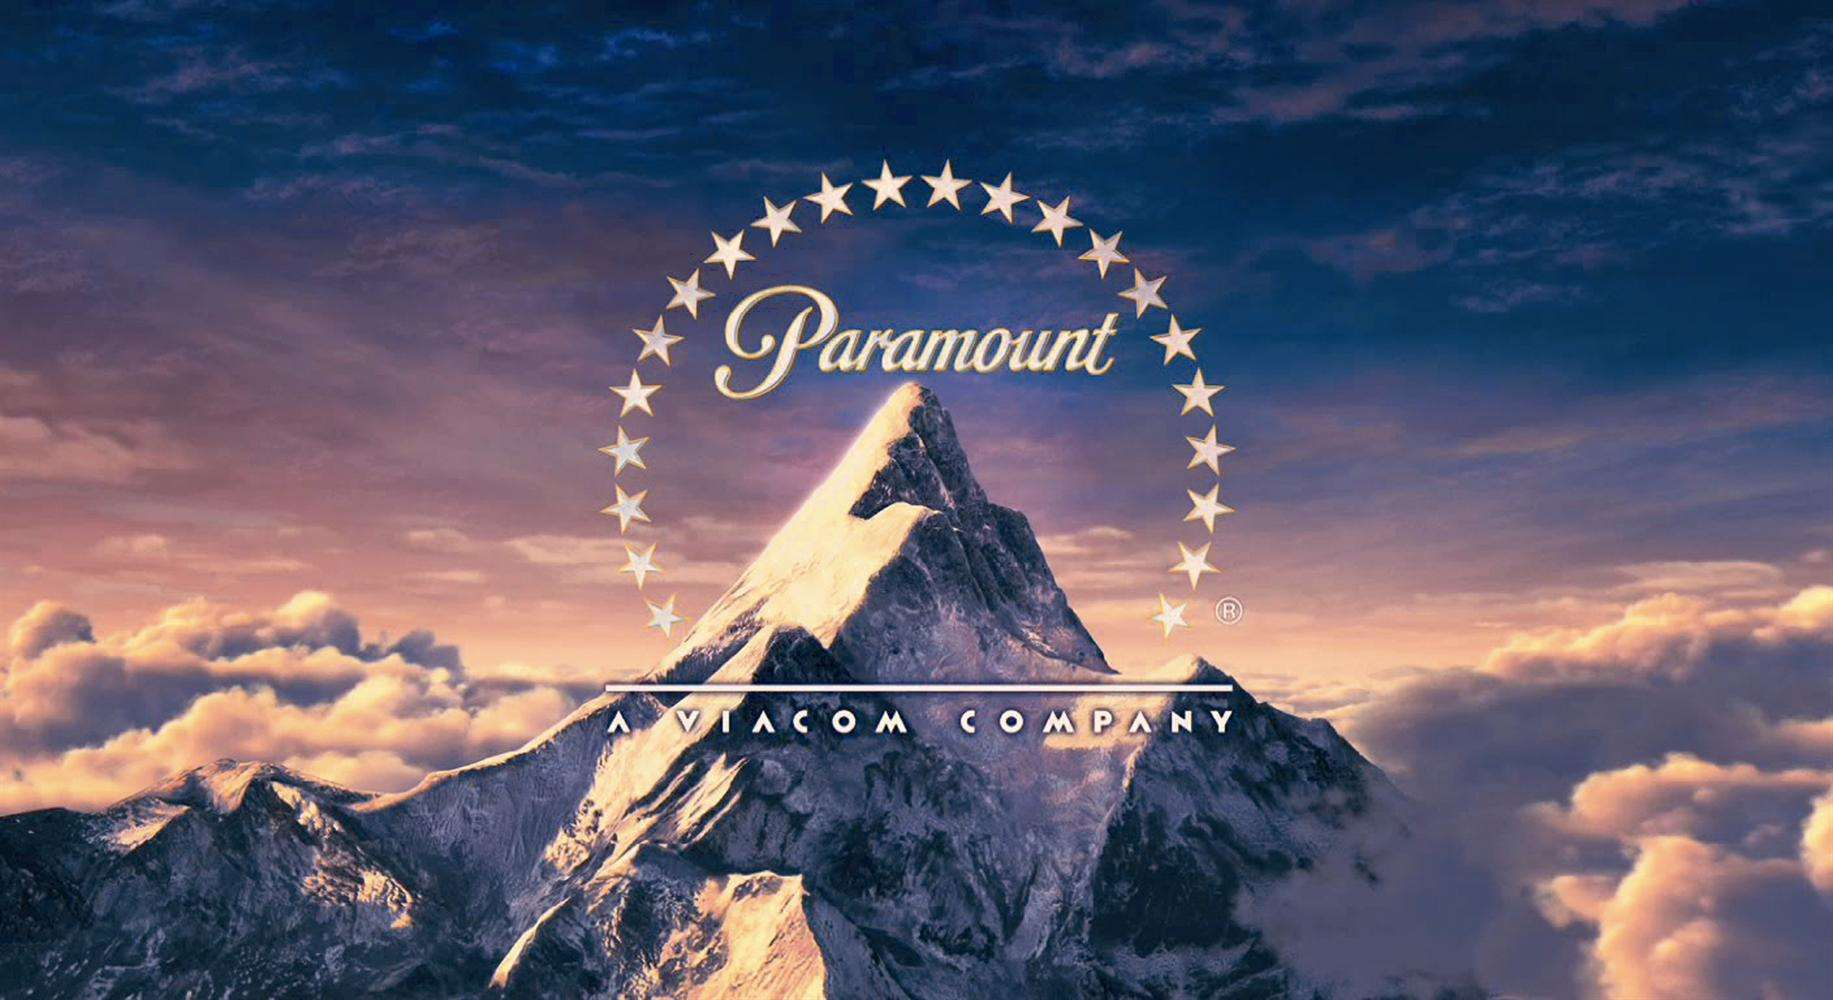 London Resort Company Holdings have an exclusive agreement to use Paramount's intellectual property in the UK